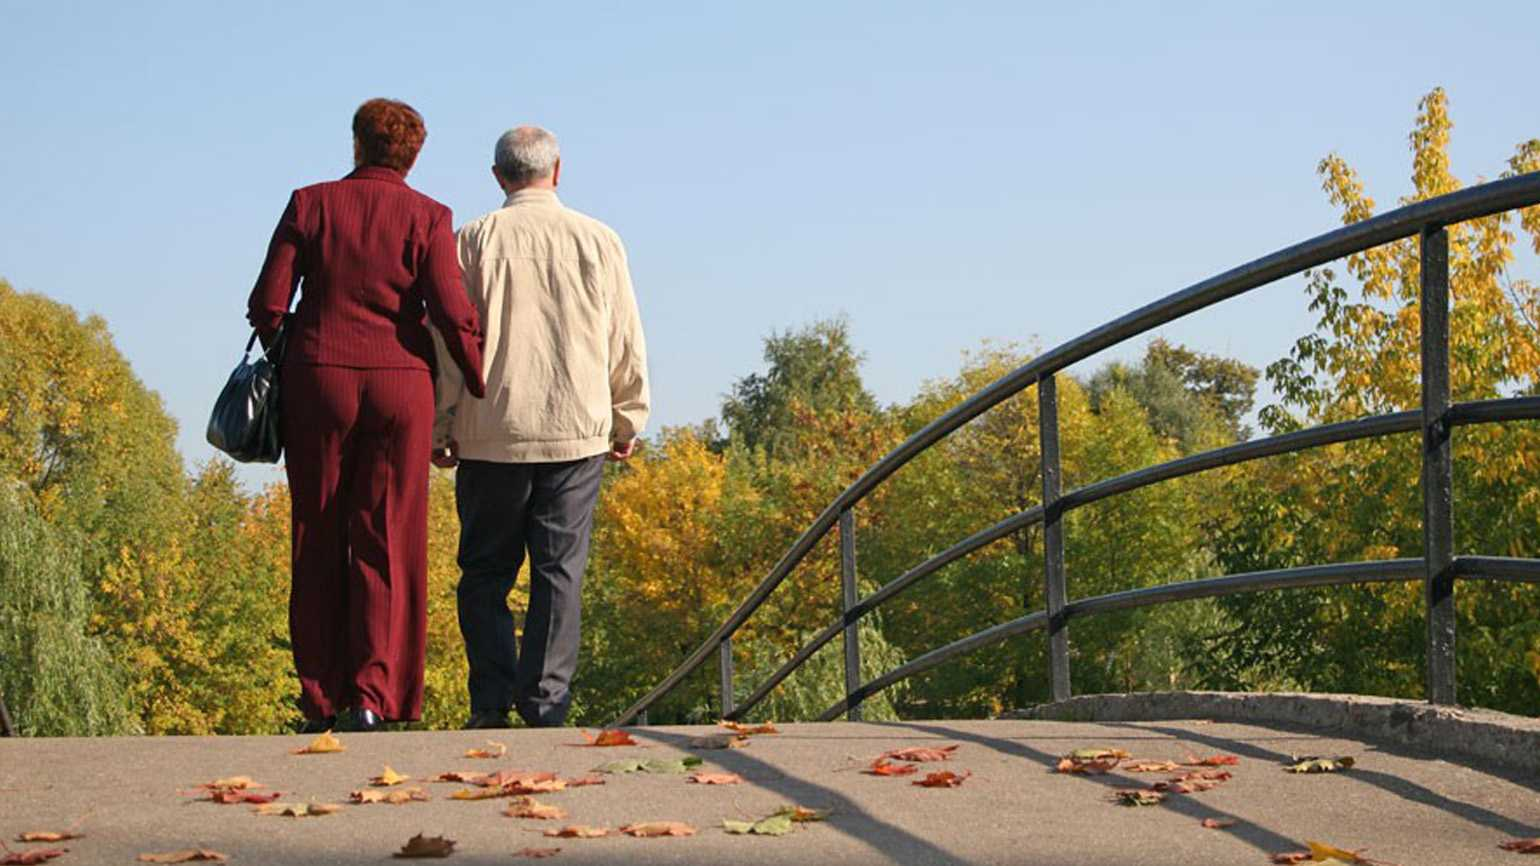 A senior couple walking across a bridge during the Autumn season.